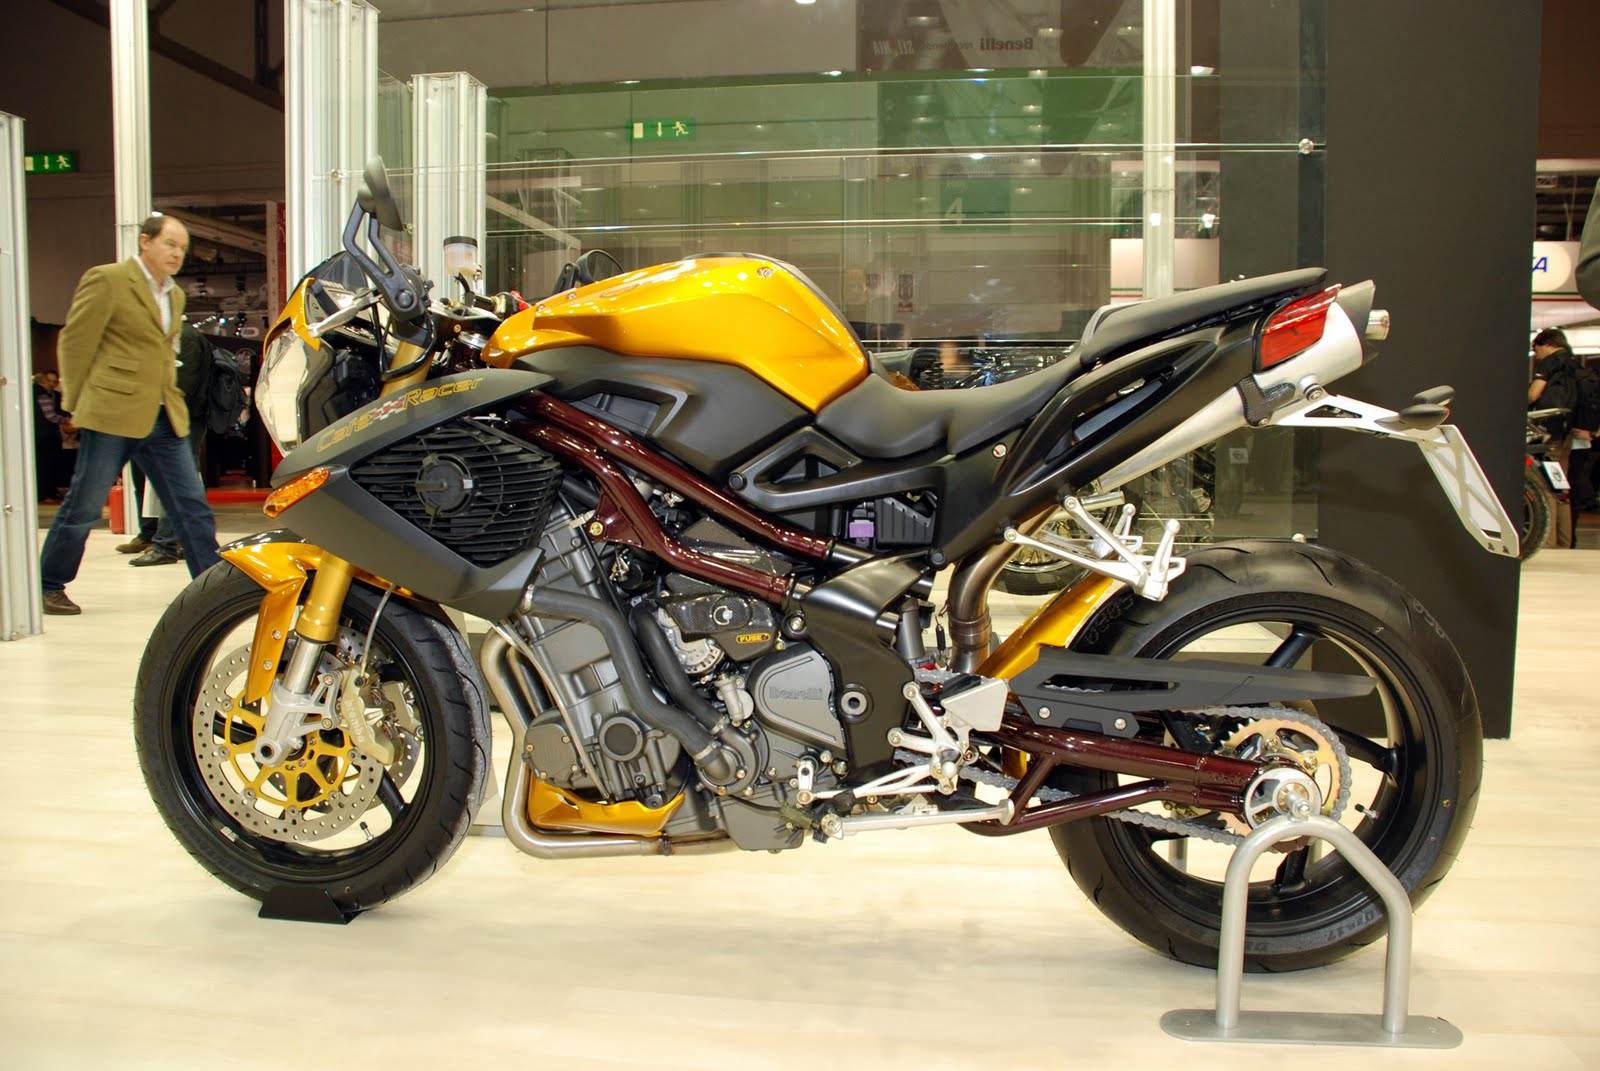 Ducati Monster 696 Benelli Cafe Racer 899 Design In Cc